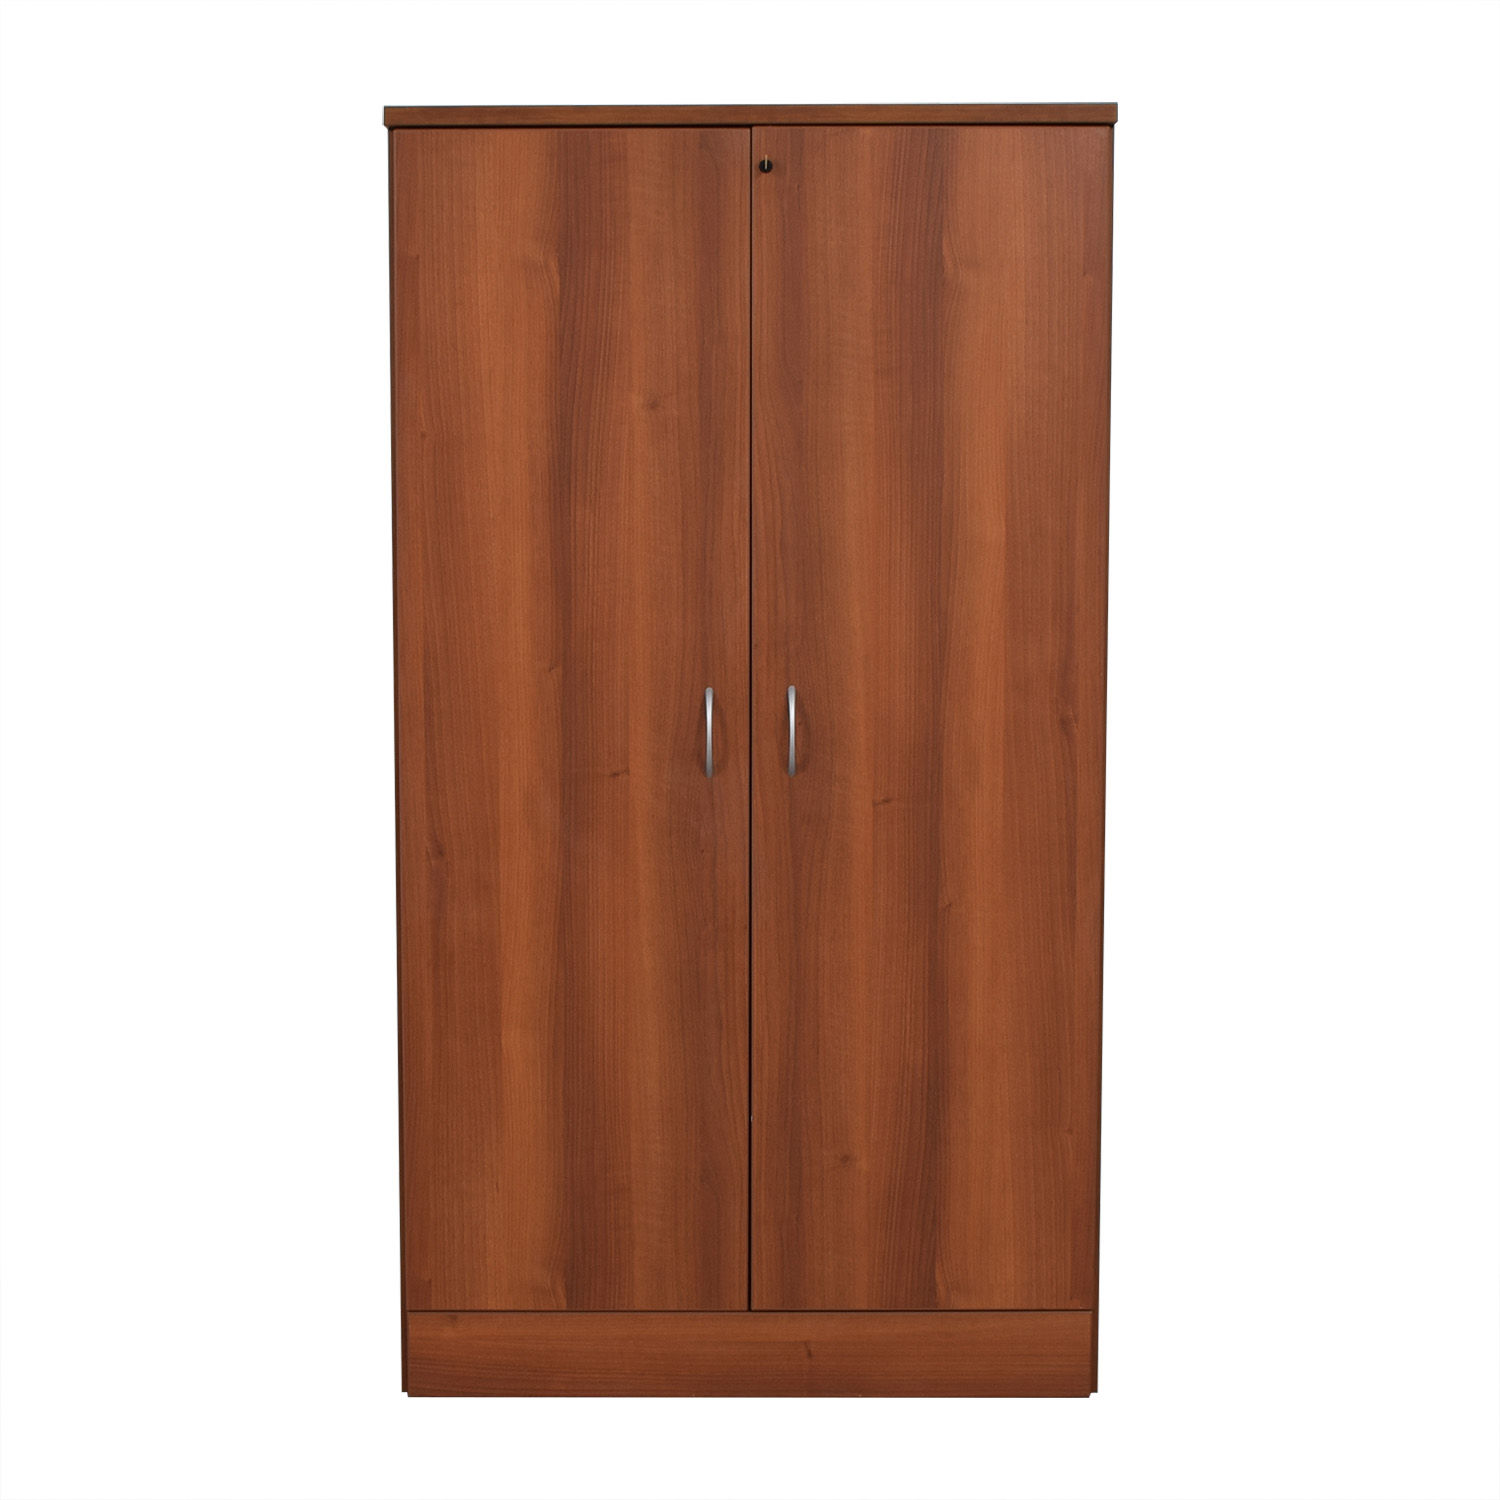 Office Wardrobe Cabinet